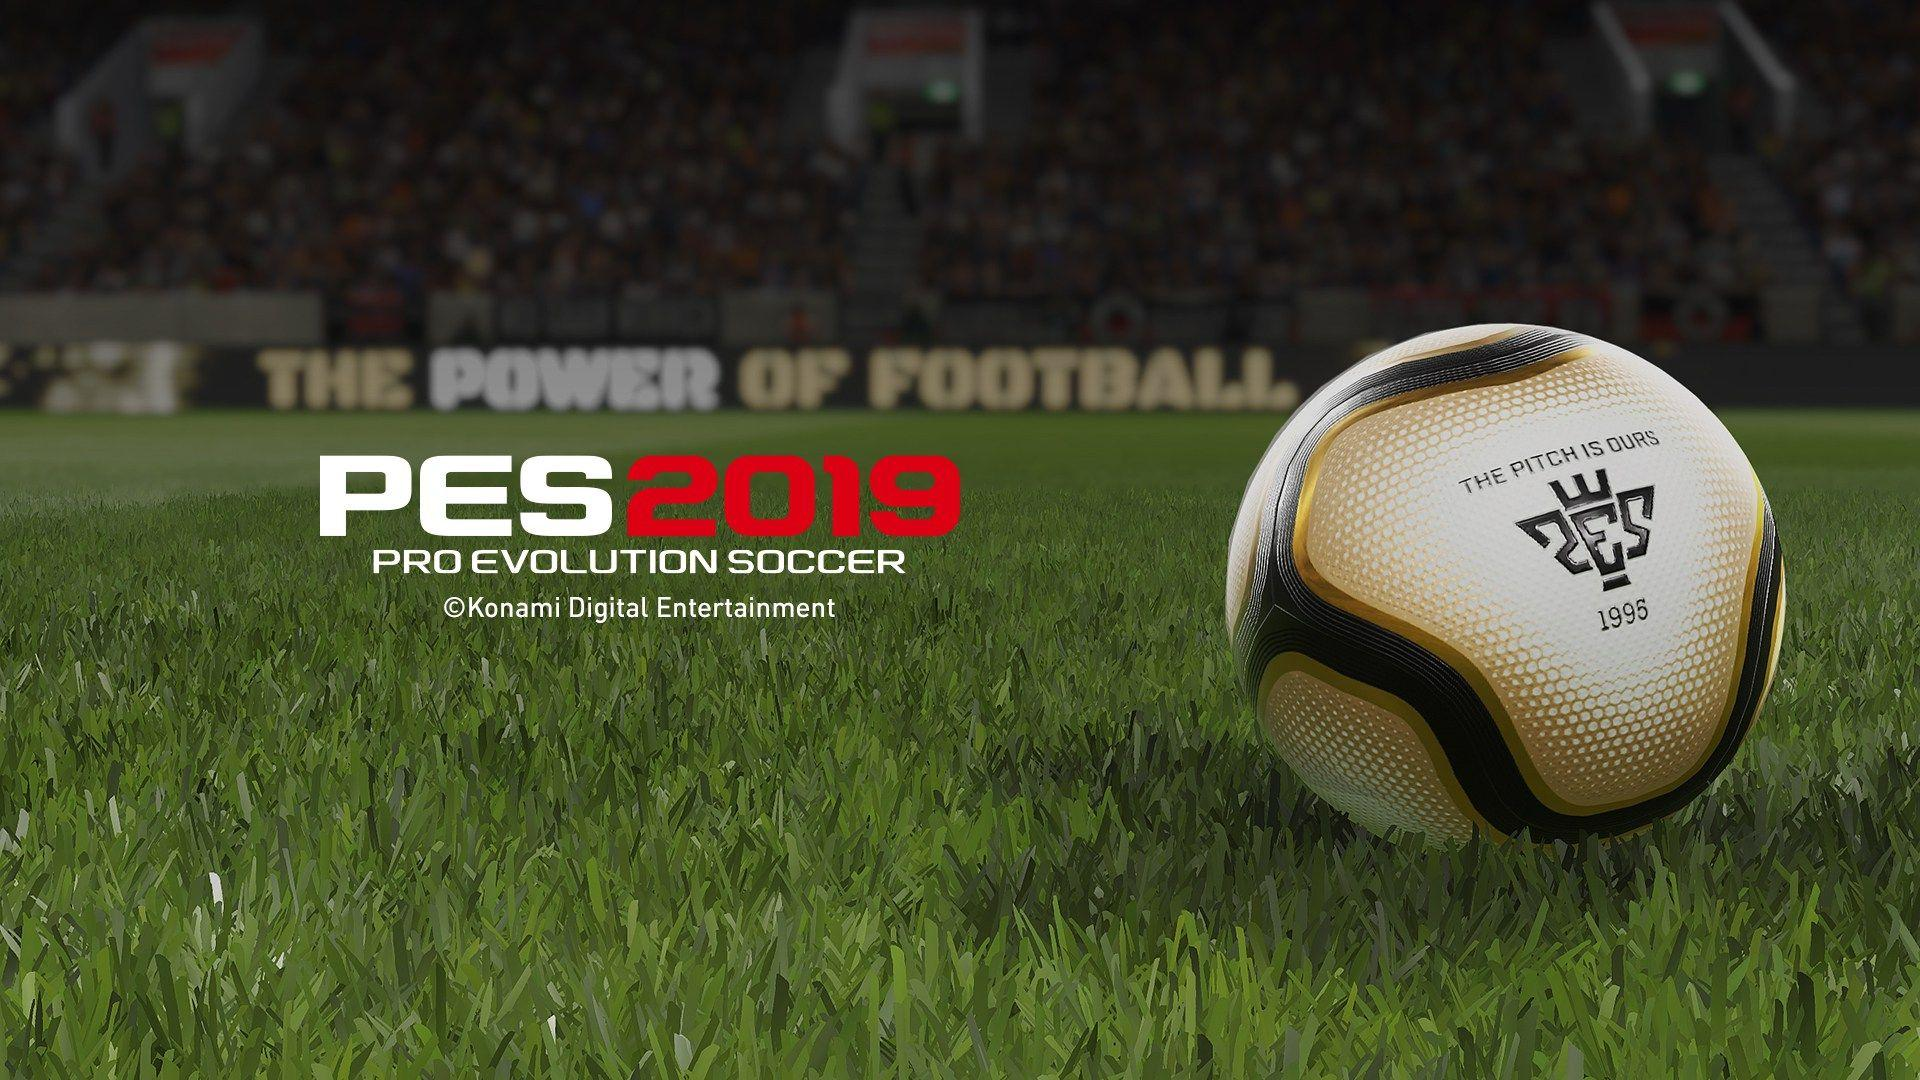 Soccer Wallpapers Backgrounds Pro: PES 2019 Wallpapers